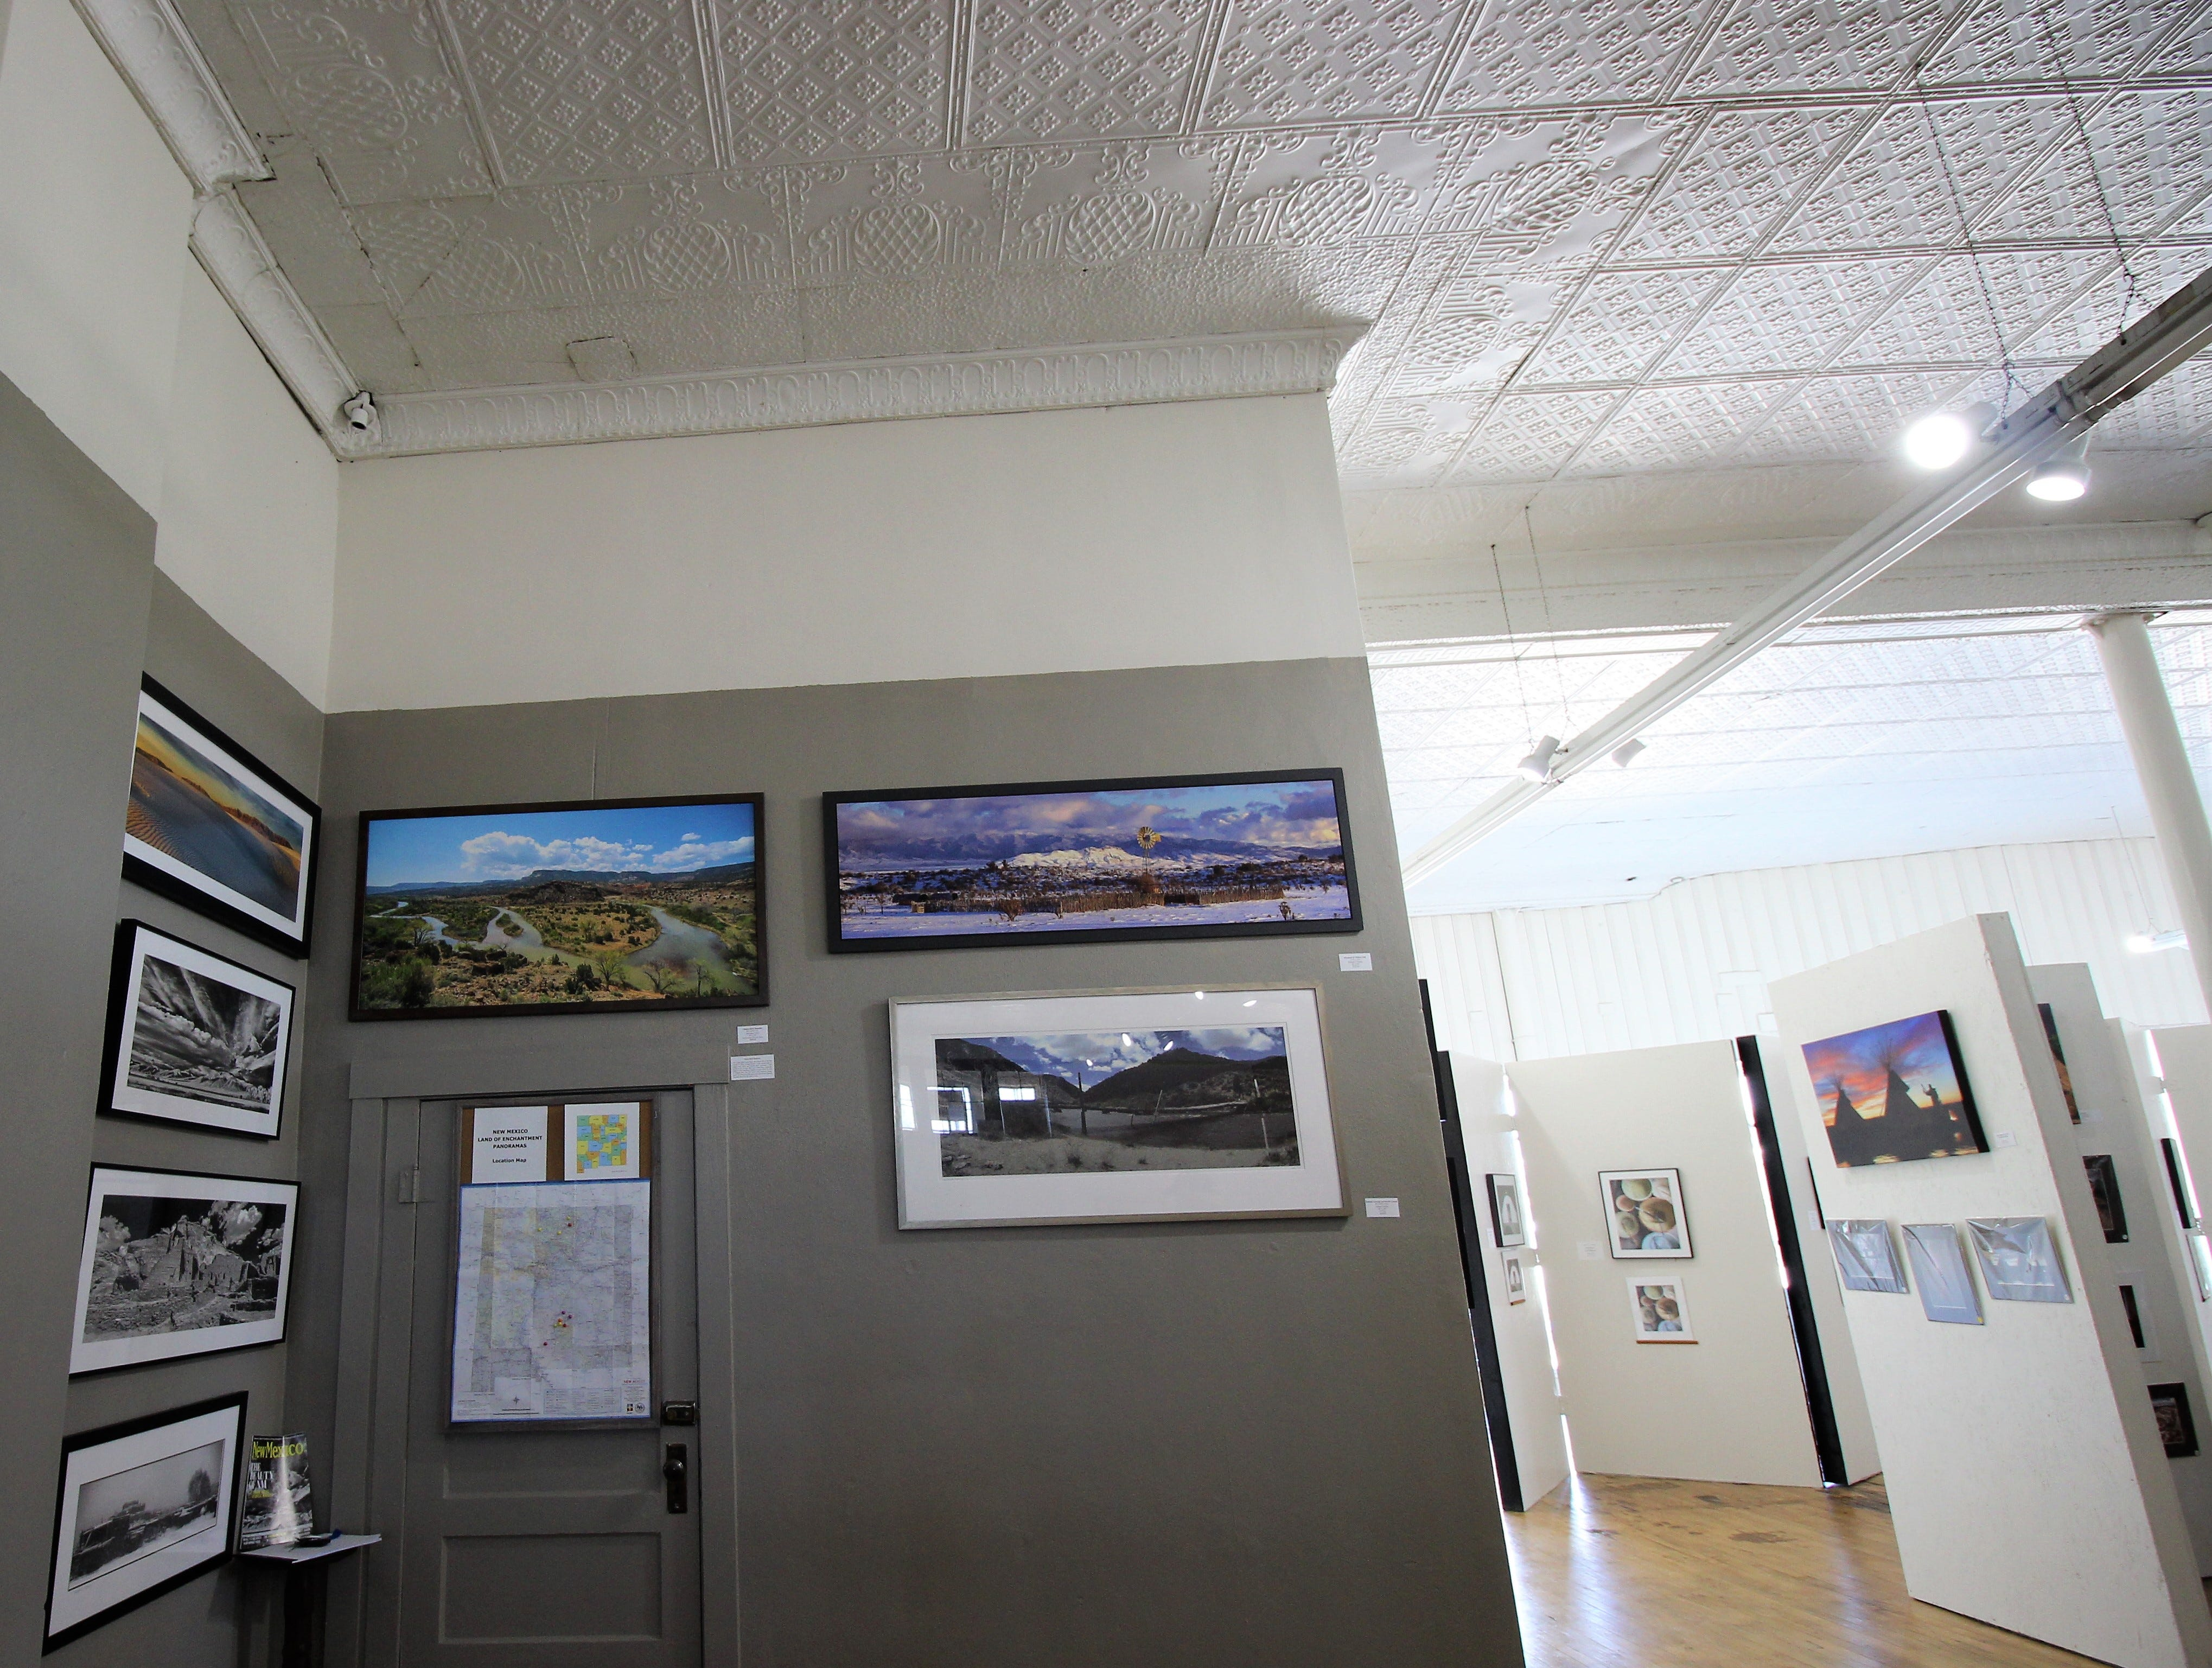 Photographers from all over New Mexico have their work on exhibit at the Tularosa Basin Gallery of Photography. A map has been placed on the wall and photographers mark where they are from with a push pin.